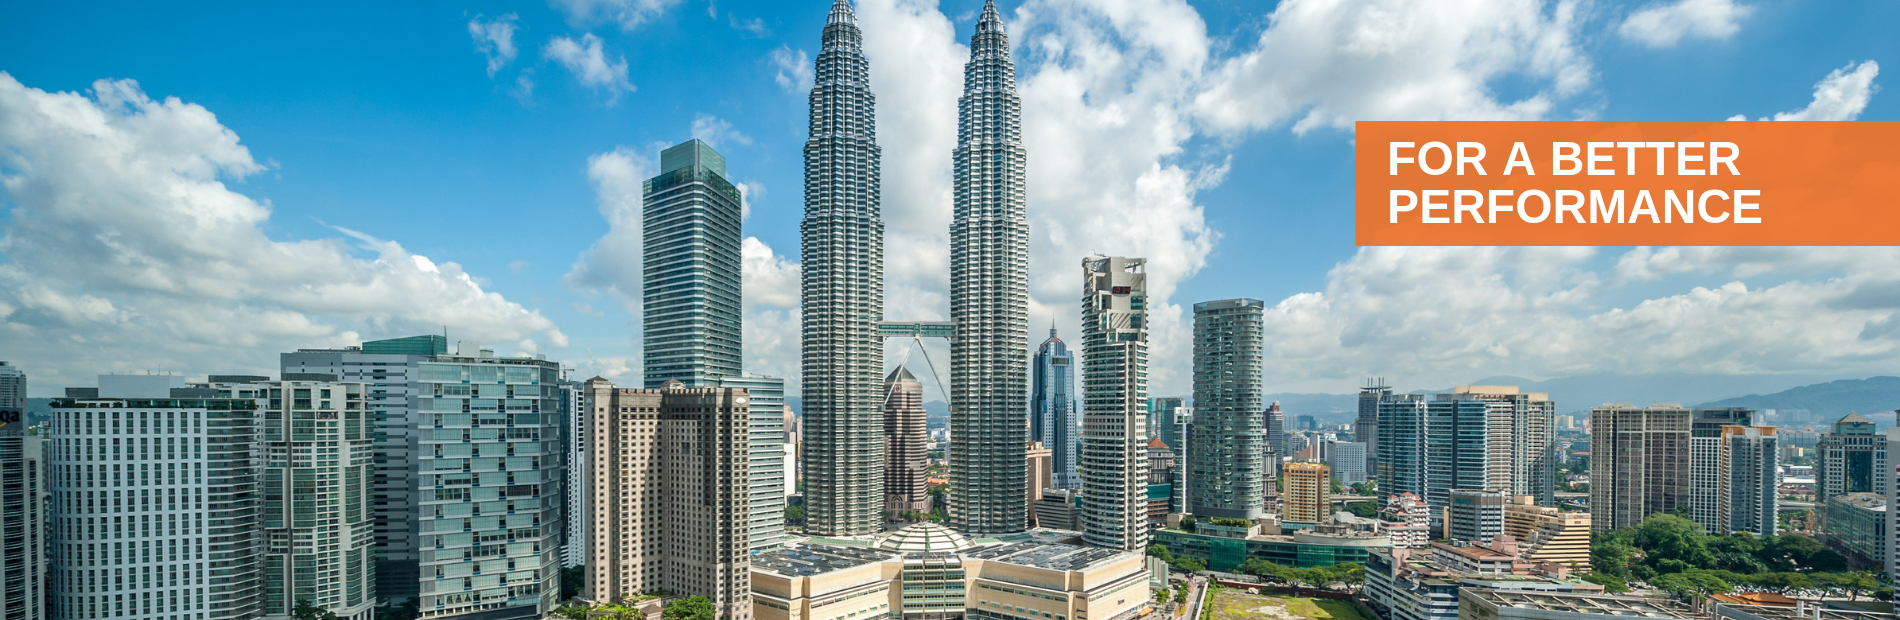 ATALIAN Global Services is present in Malaysia